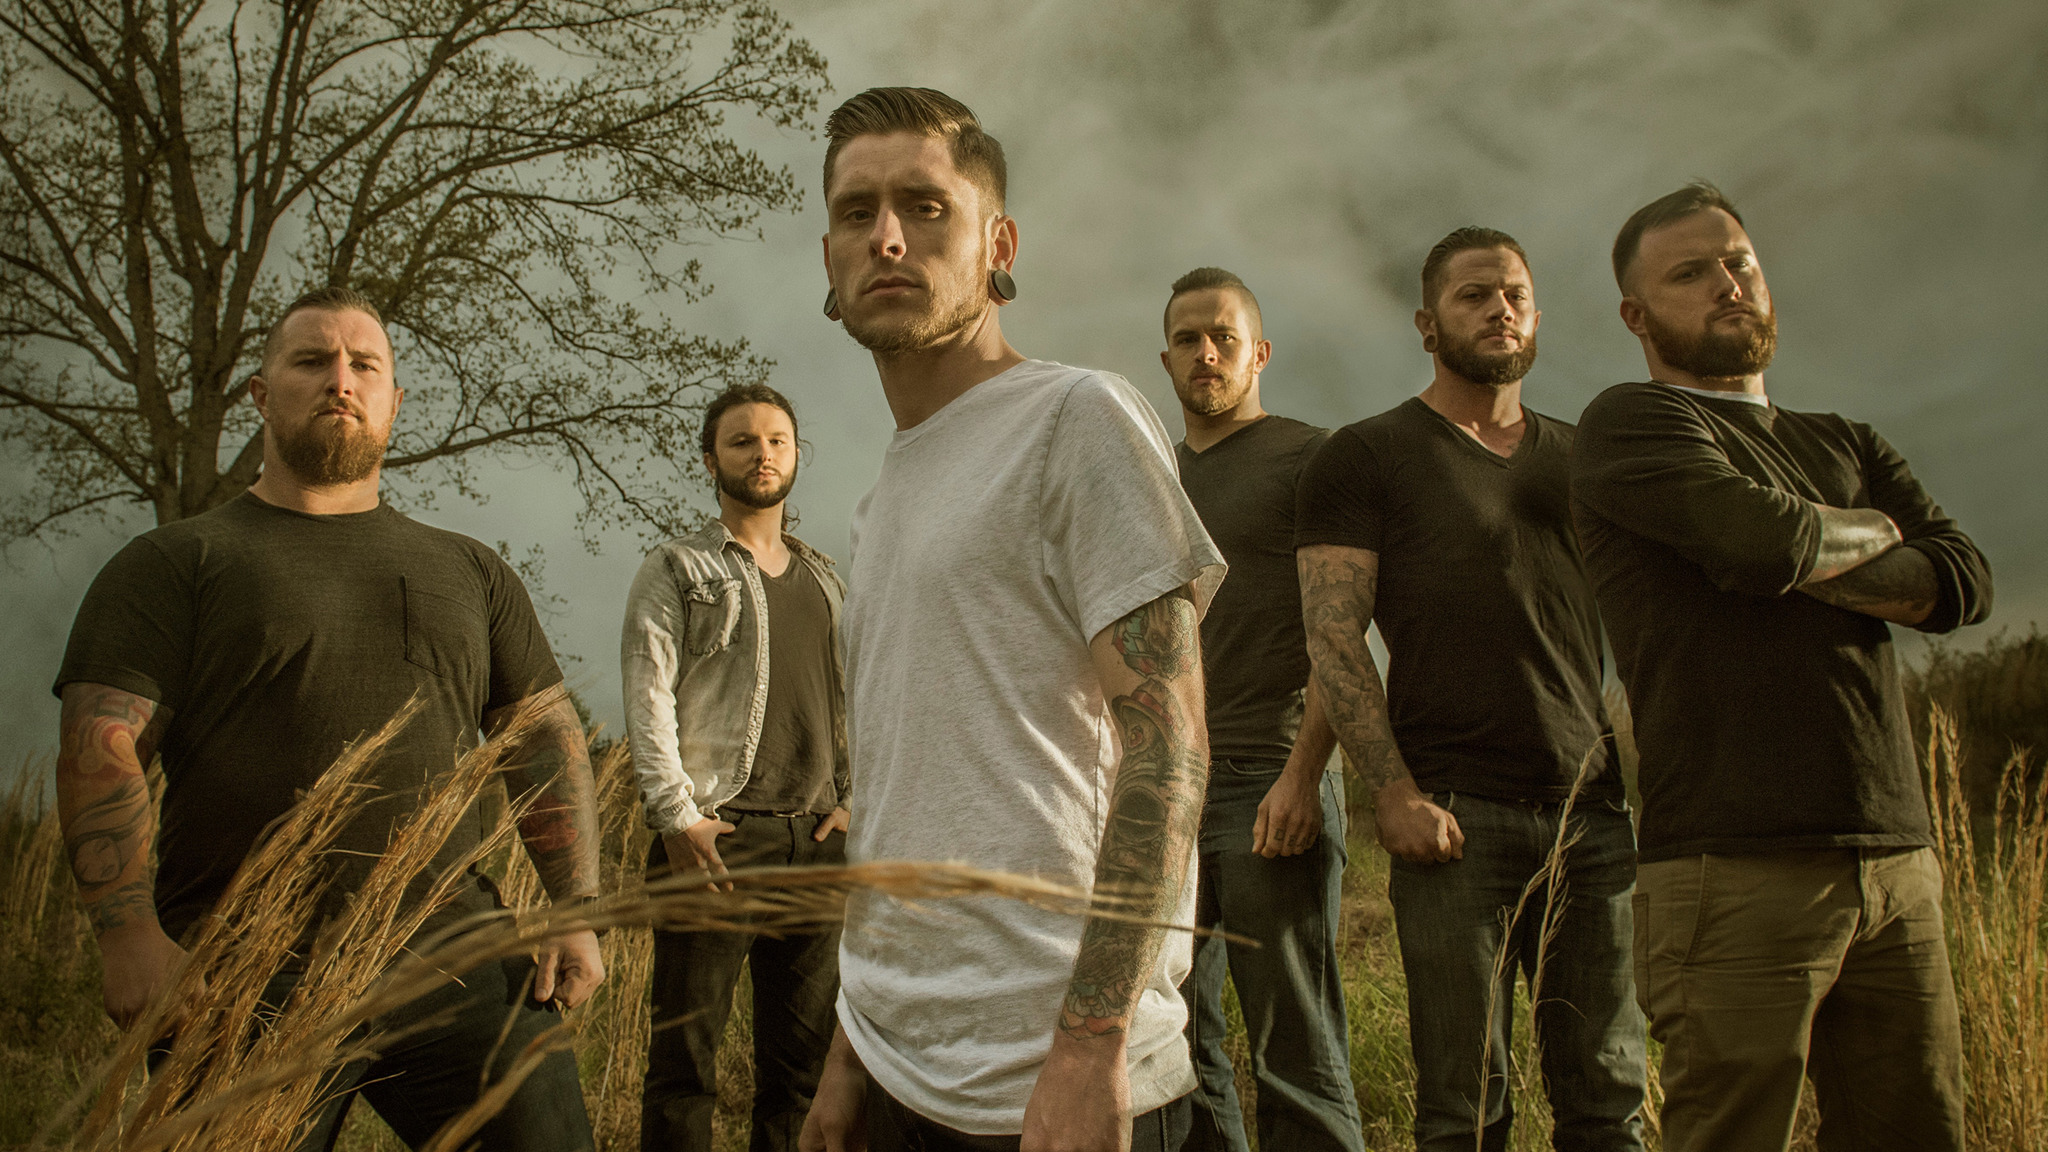 Whitechapel The Black Dahlia Murder Nowplayingnashville Com